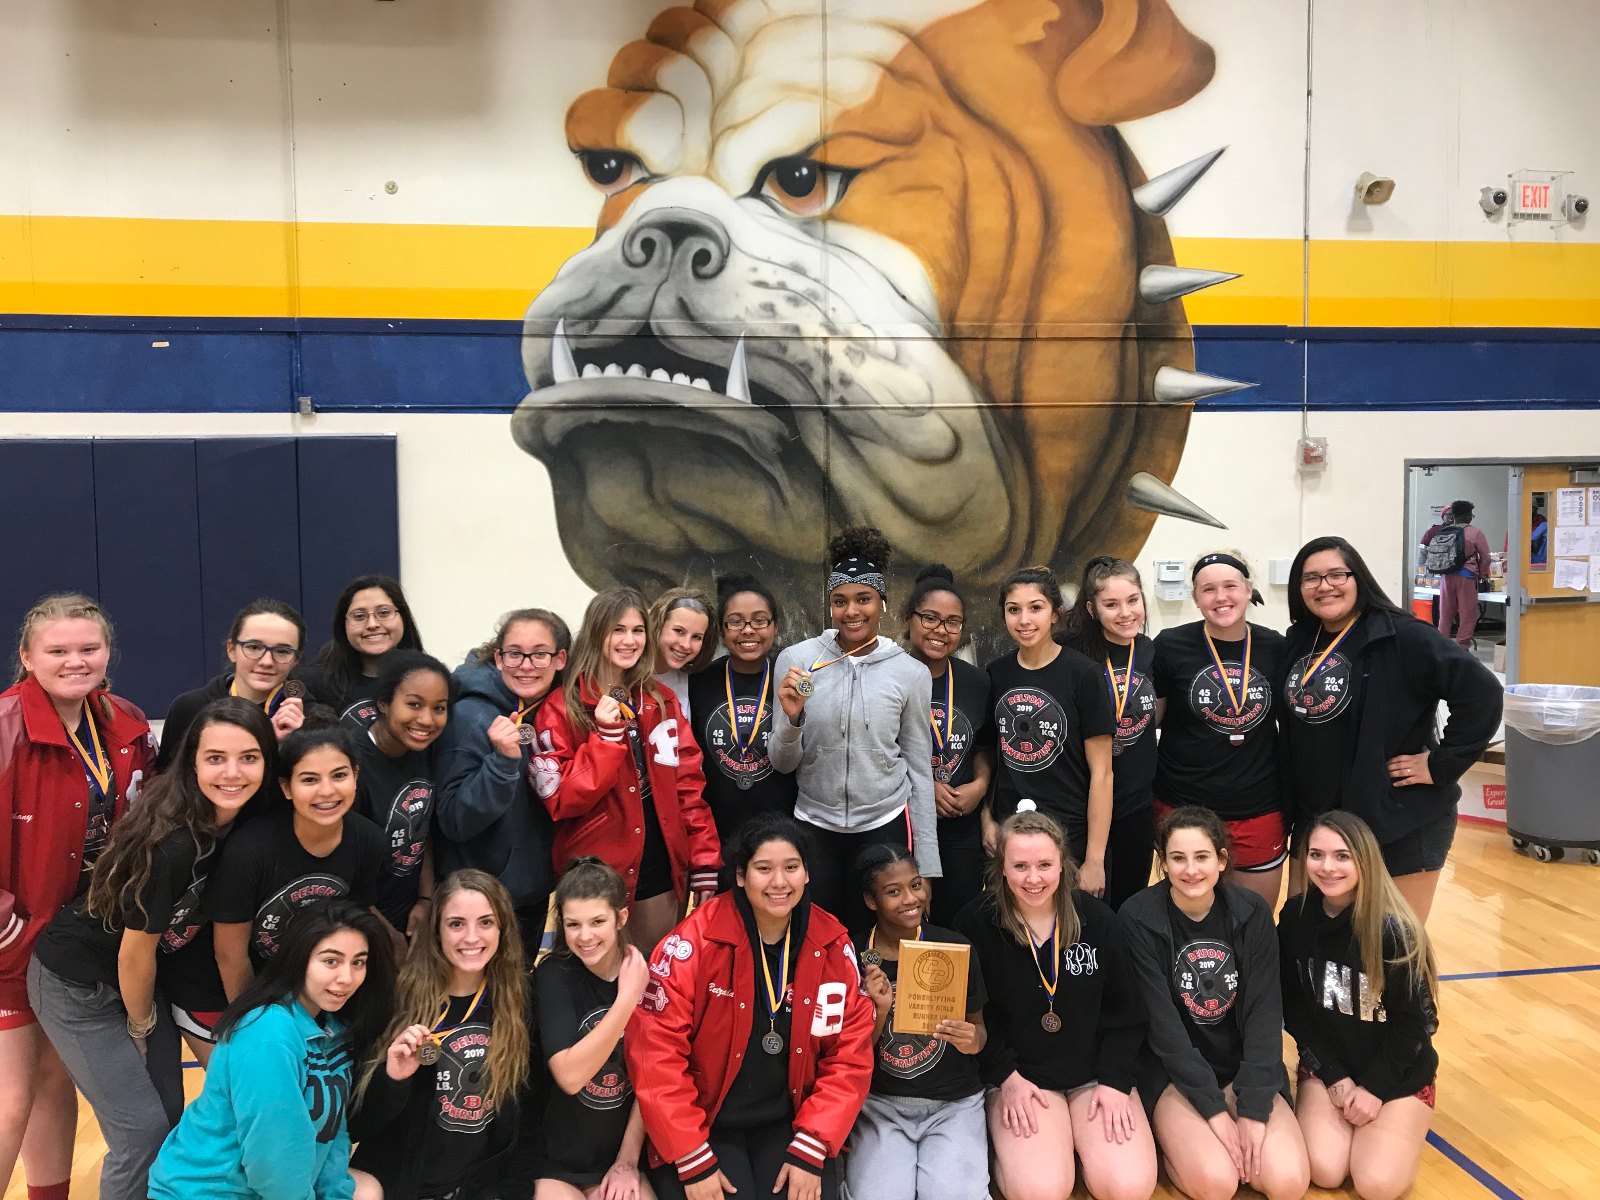 Lady Tiger Lifters Grab Runner-Up Honors in Cove Last Chance Qualifier